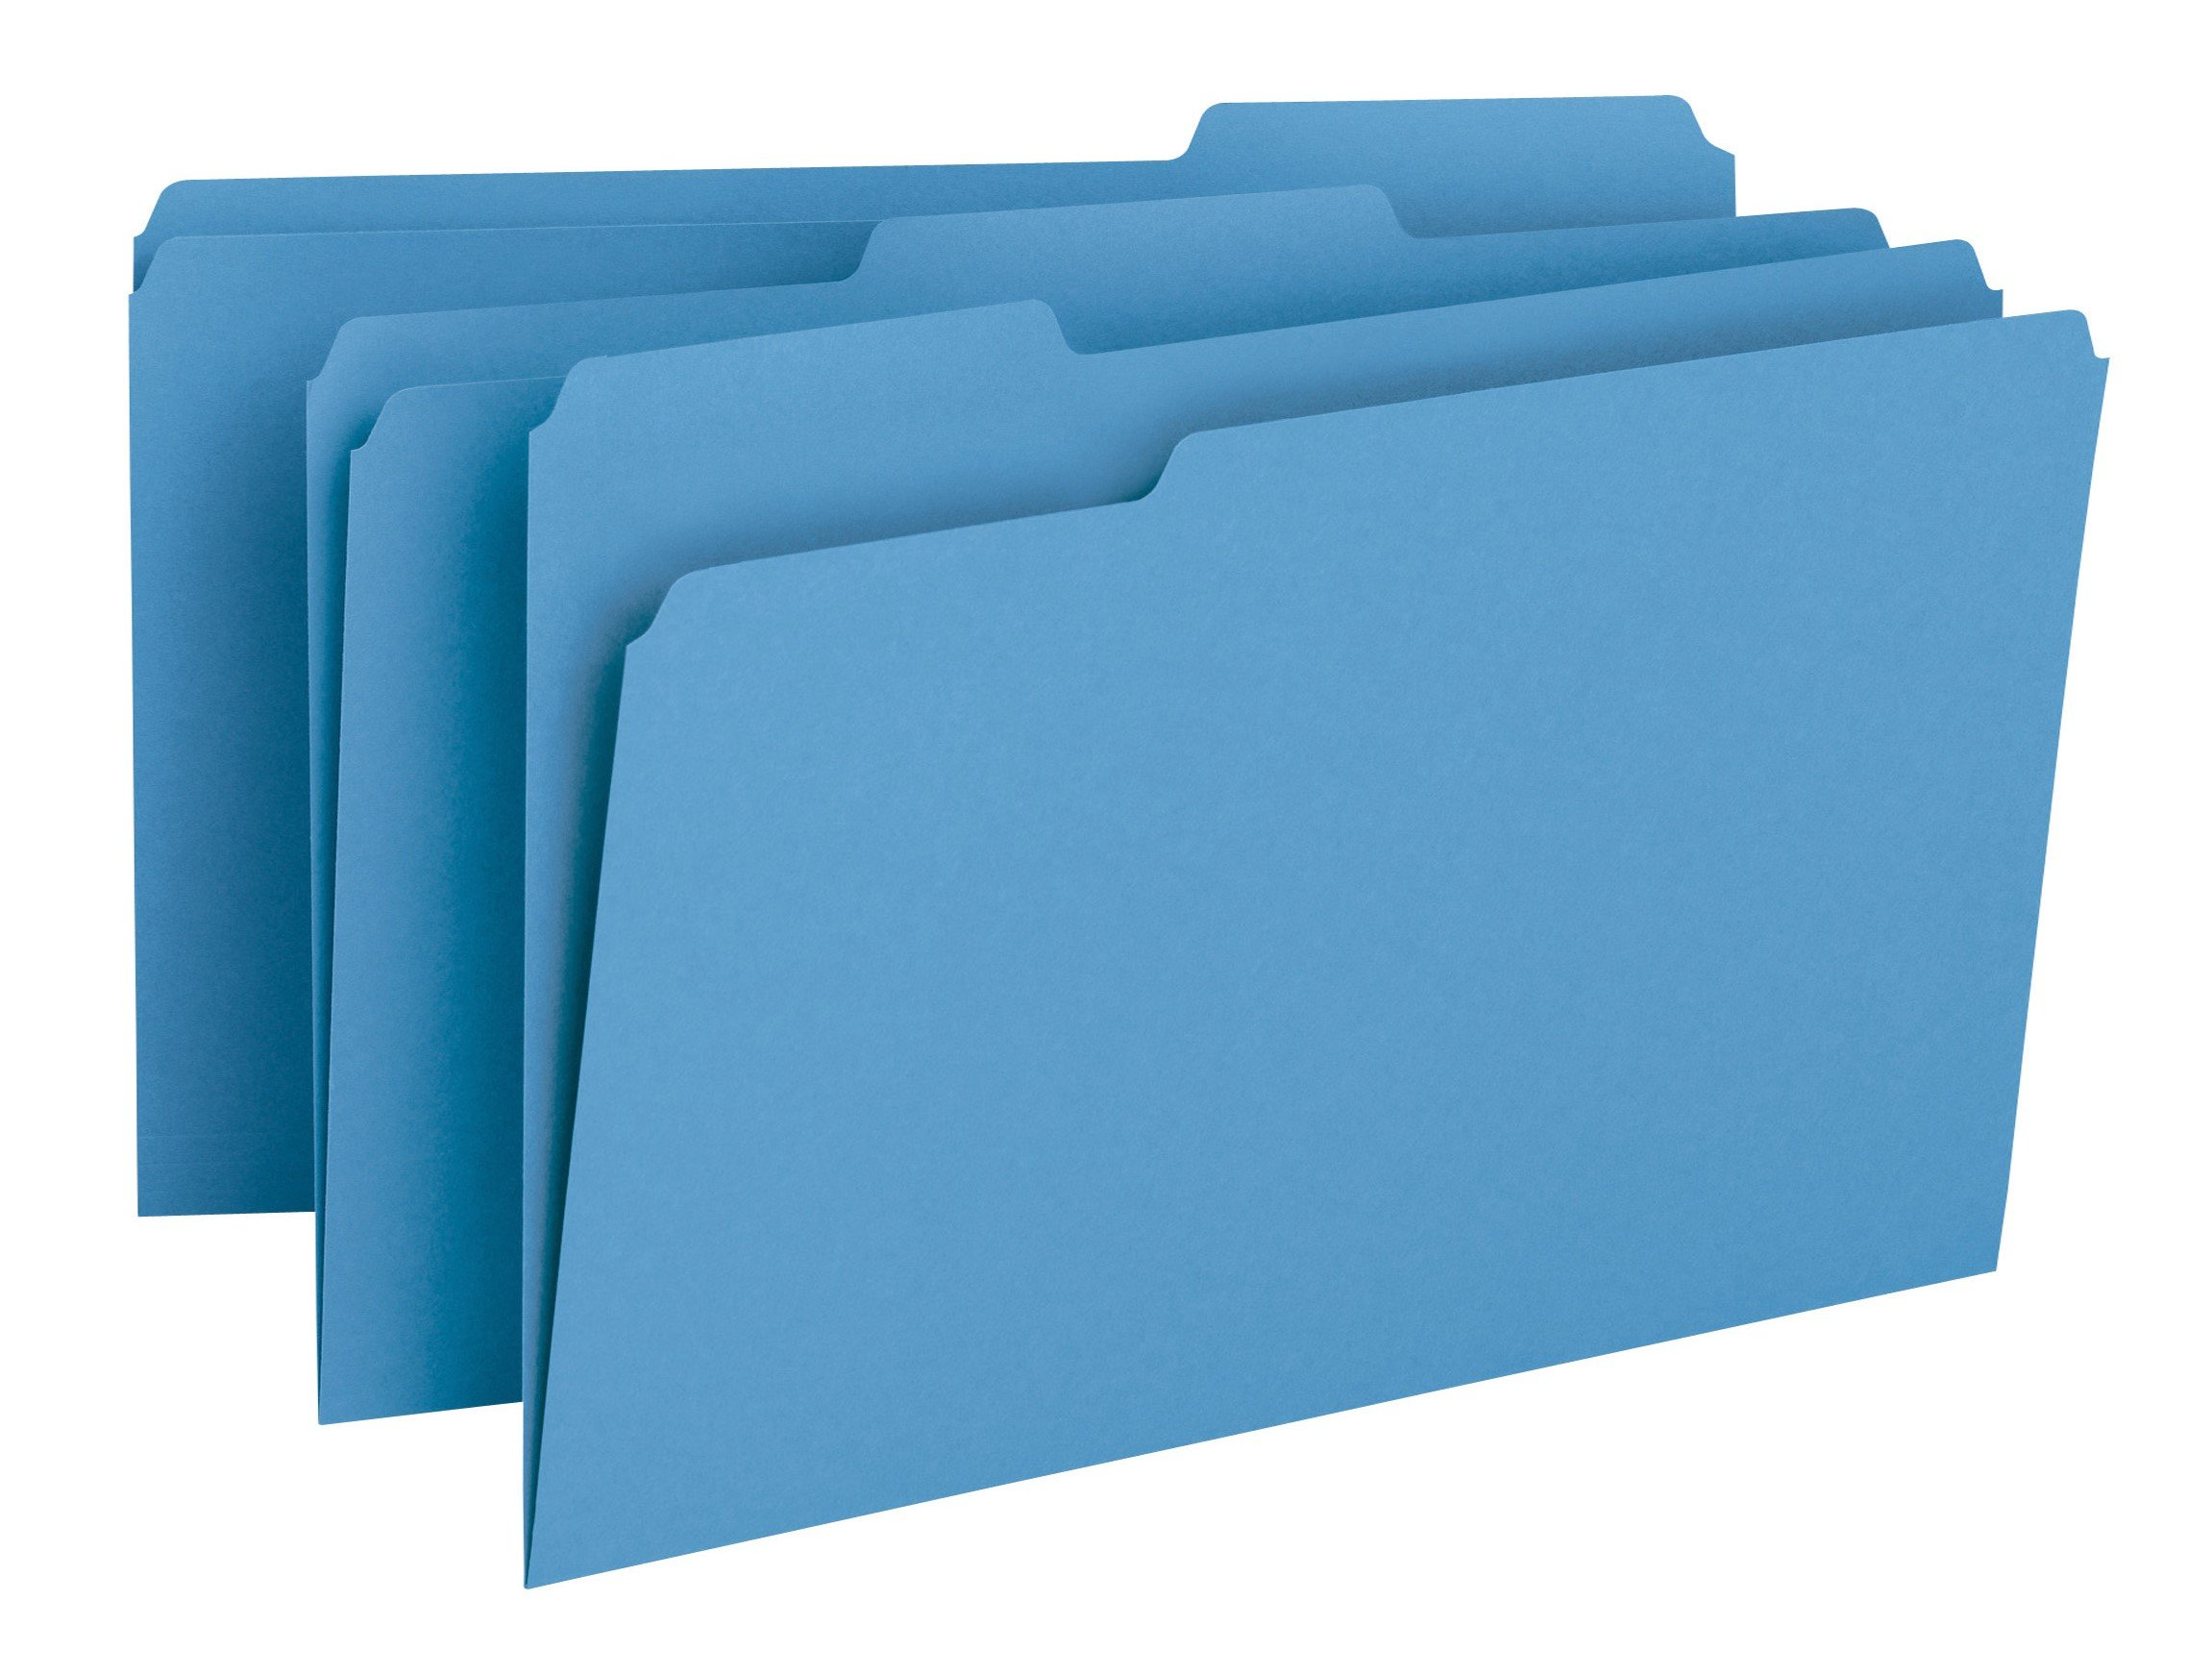 Smead File Folder, 1/3-Cut Tab, Legal Size, Blue, 100 per Box (17043)